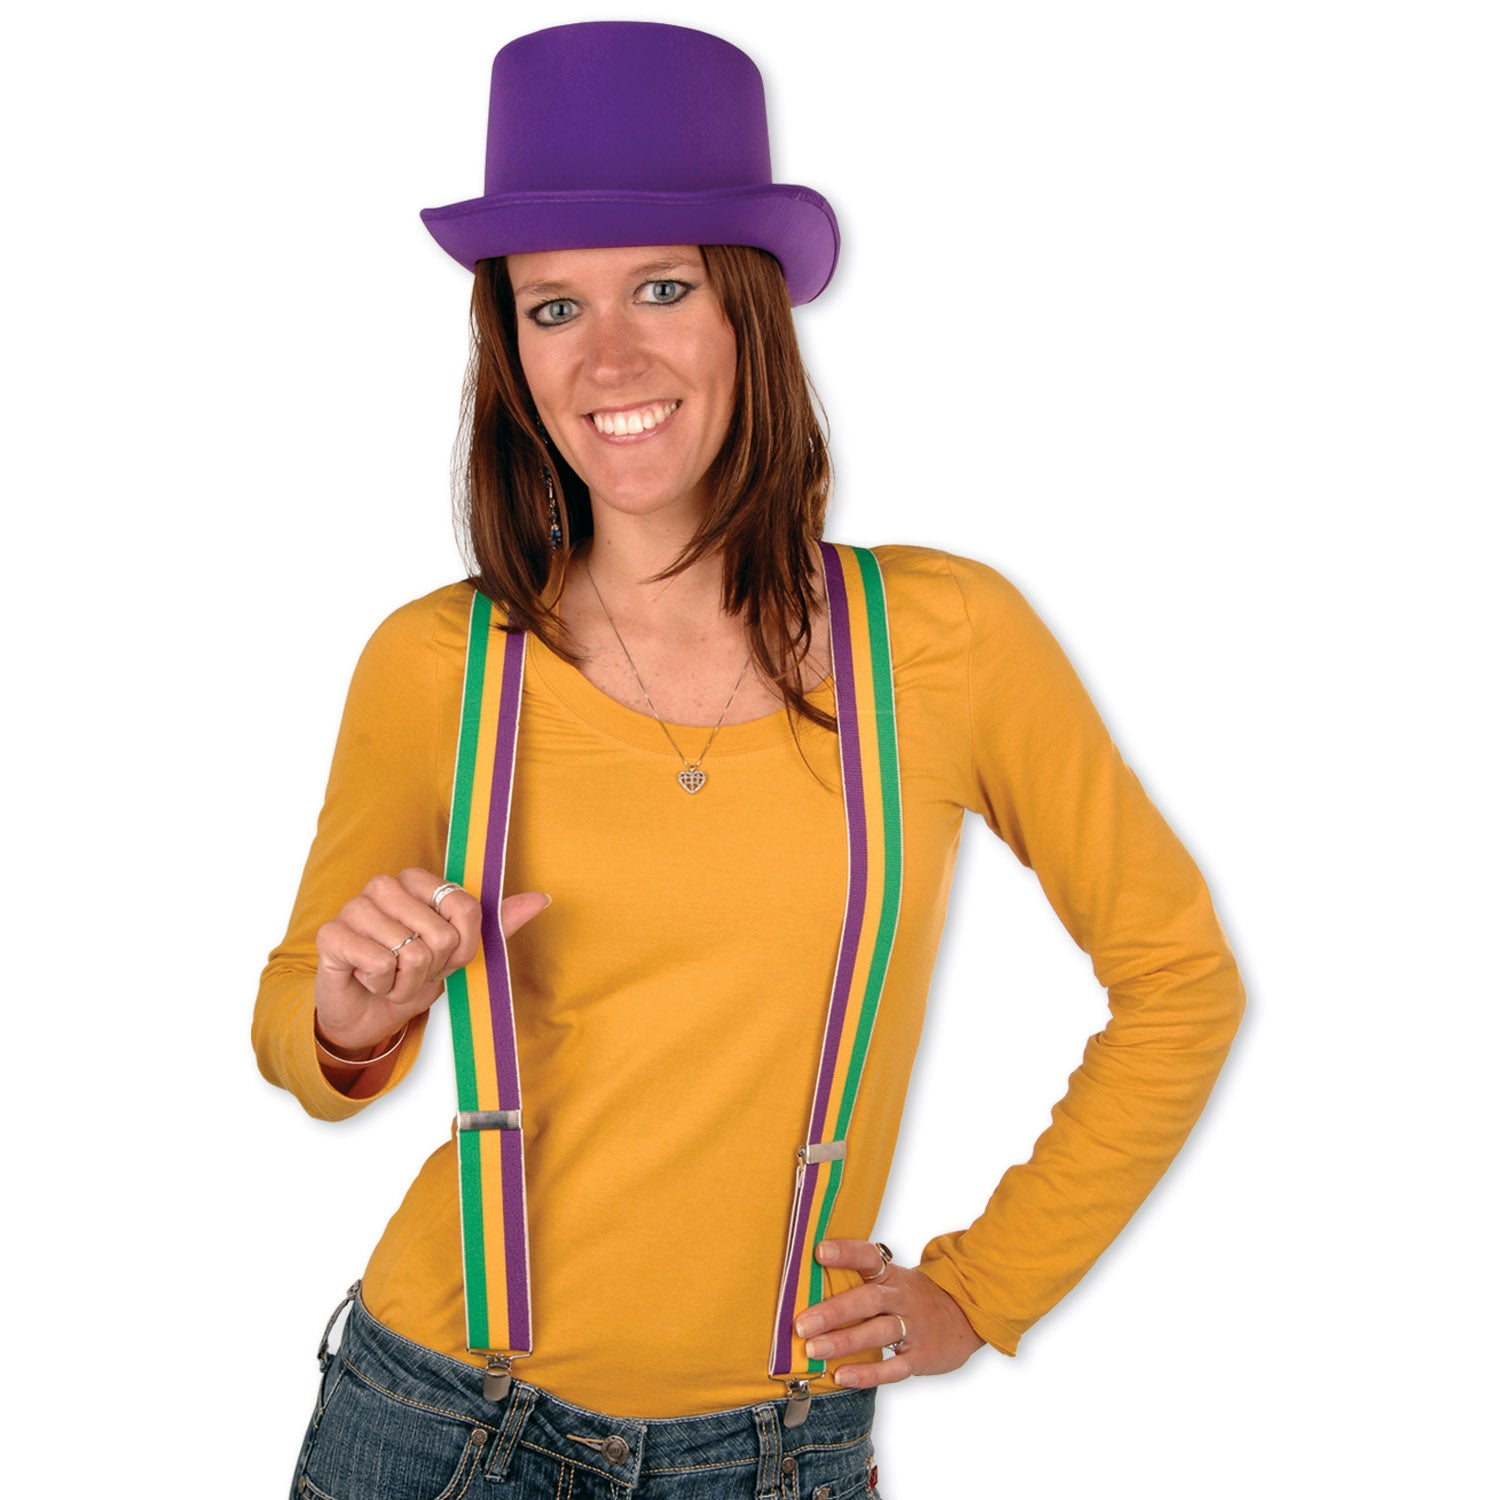 Mardi Gras Suspenders by Beistle - Mardi Gras Theme Decorations